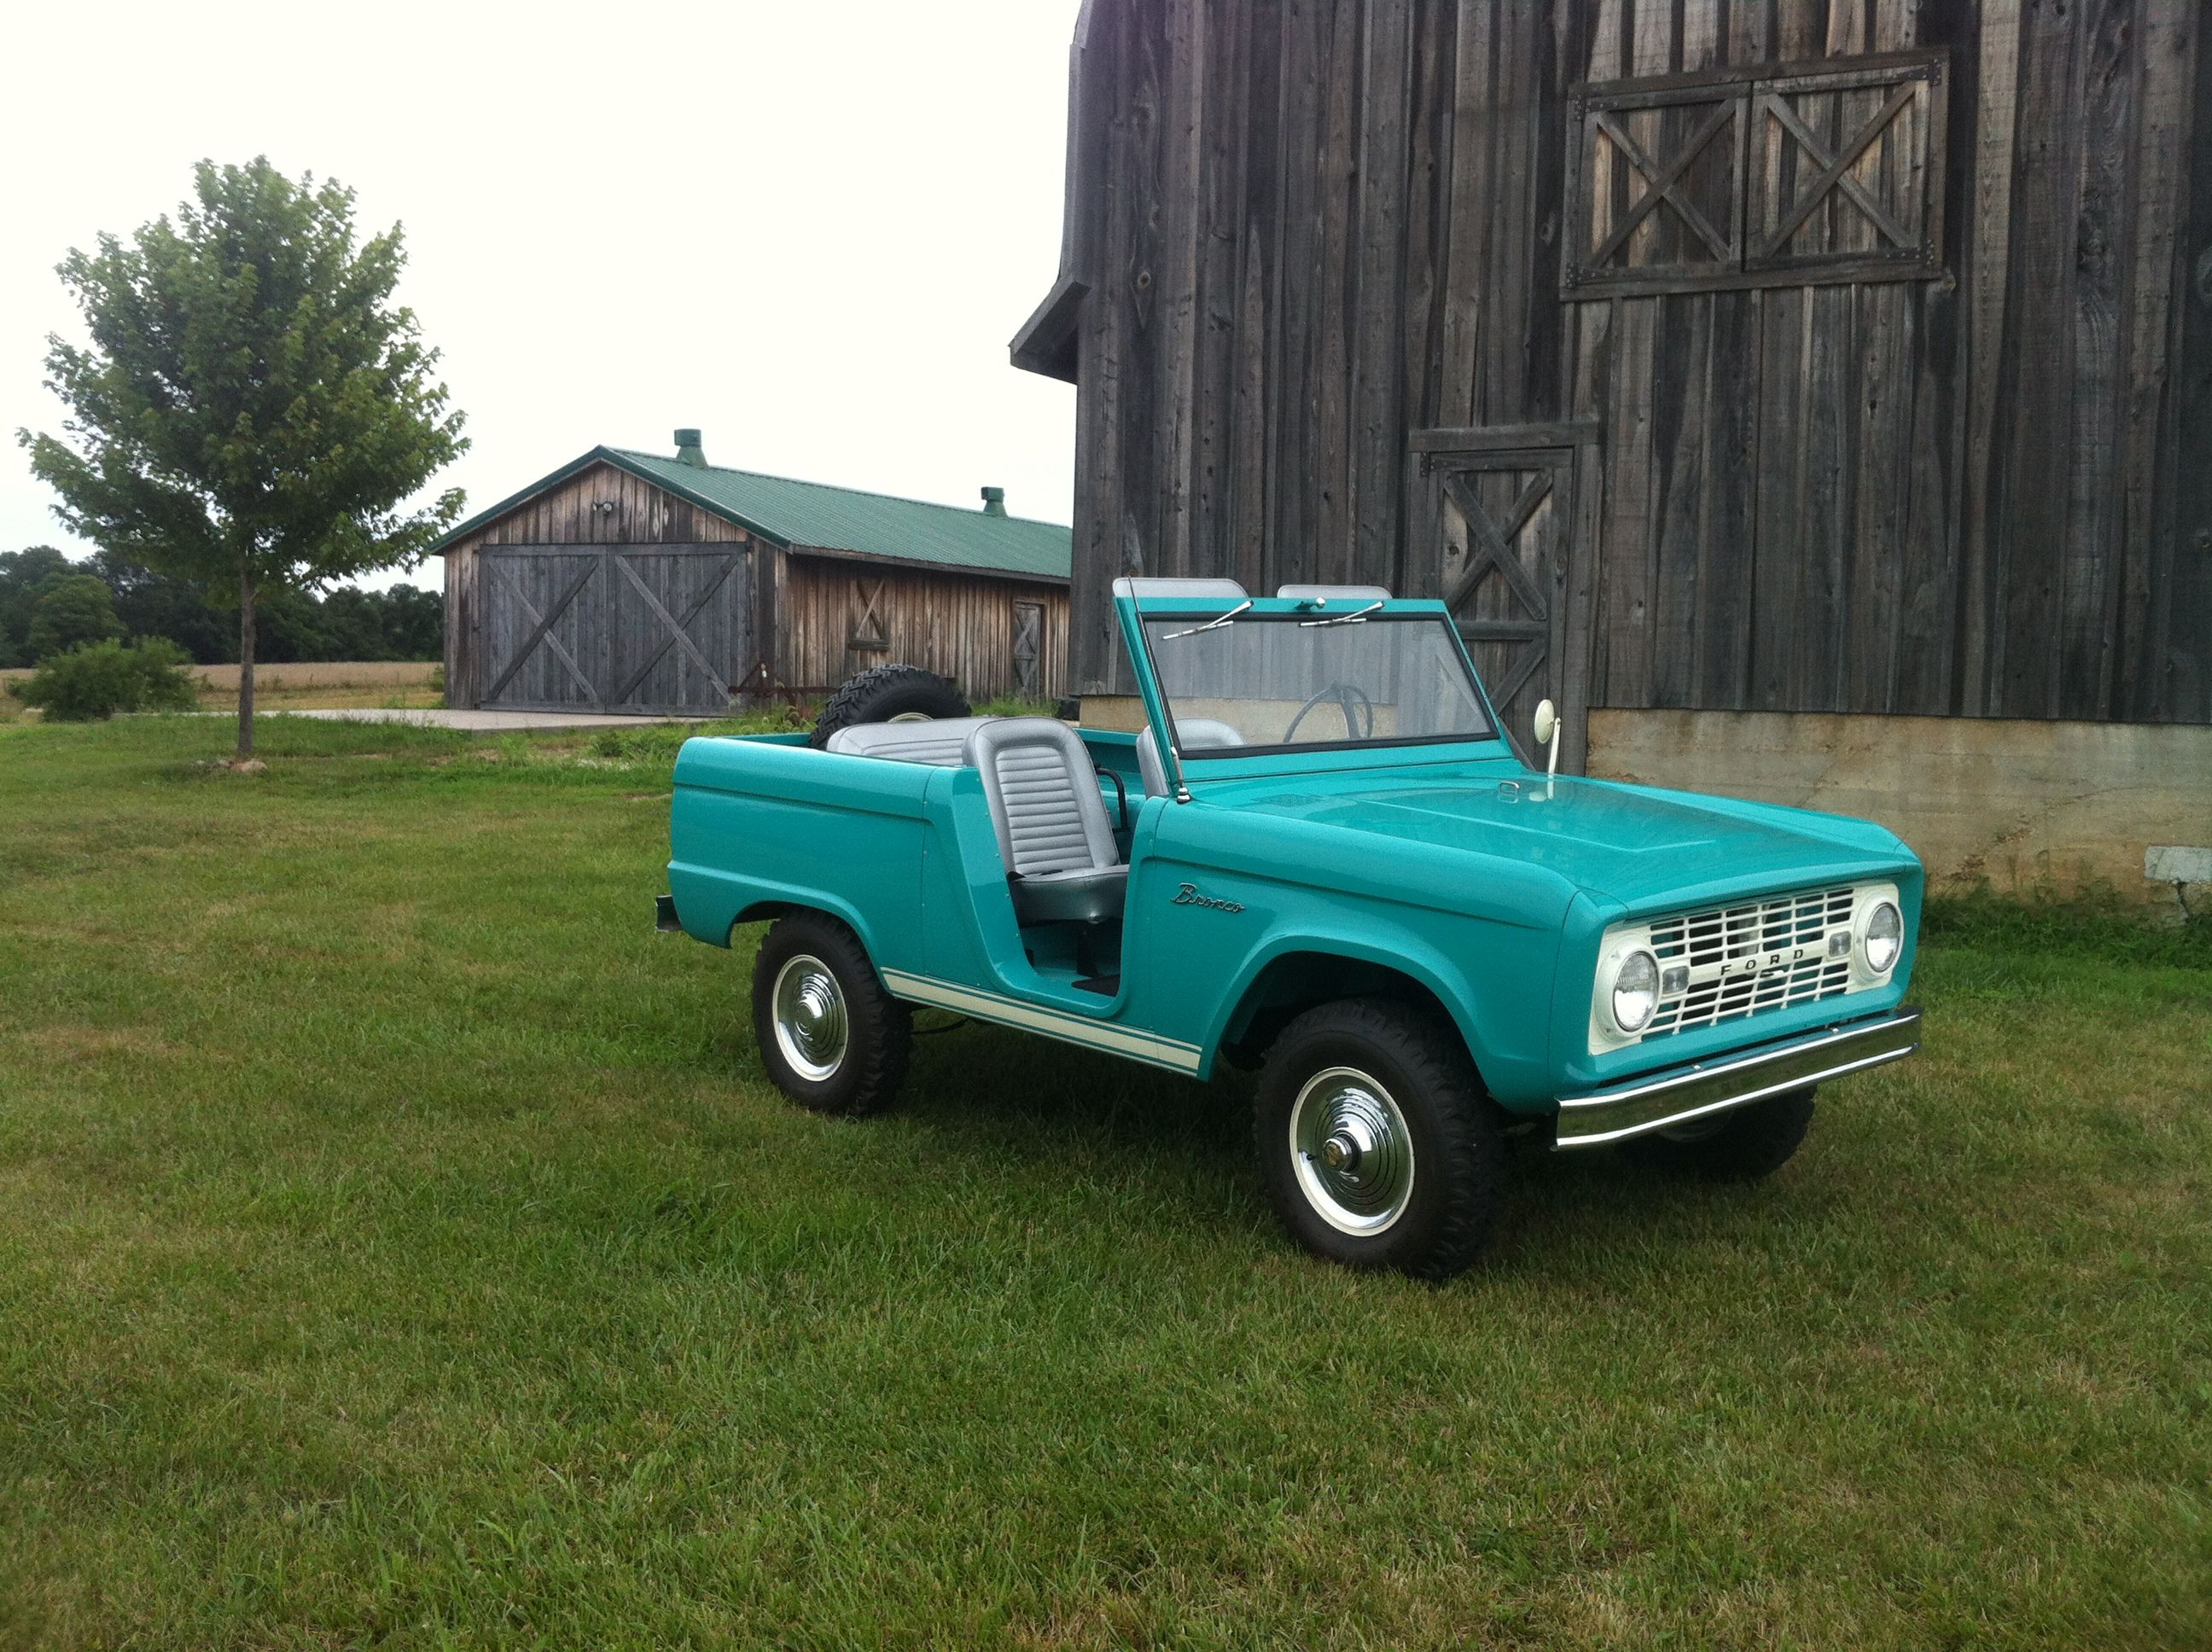 1966 Bronco Roadster U13 August 1965 Build Very Low Early Production Number Ford Bronco Classic Bronco Bronco